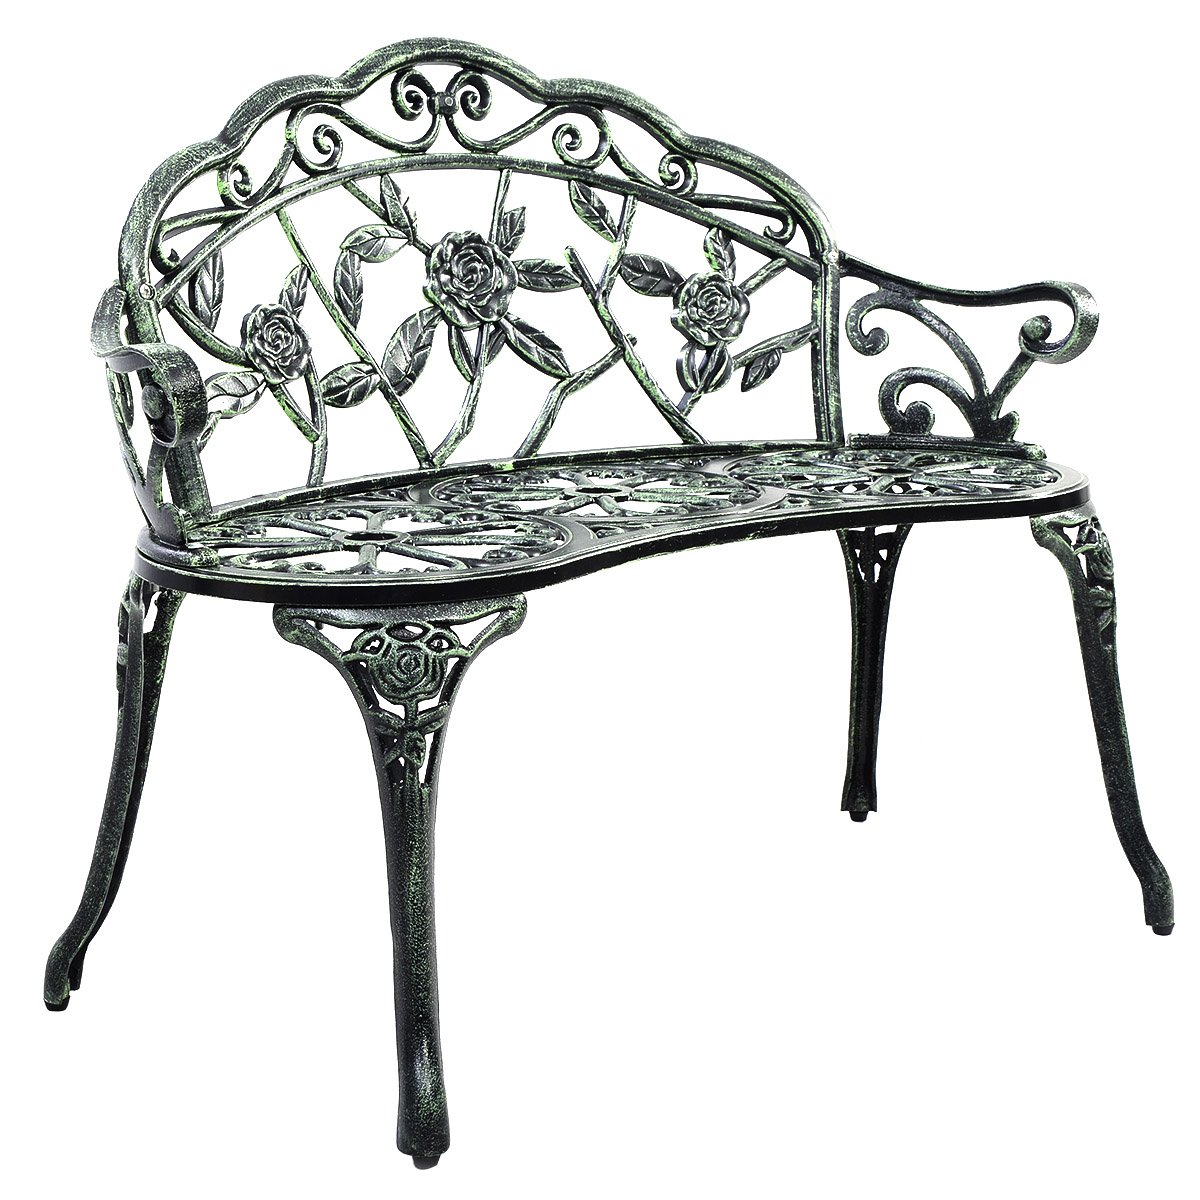 Giantex Patio Garden Bench Chair Style Porch Cast Aluminum Outdoor Rose Antique Green 0